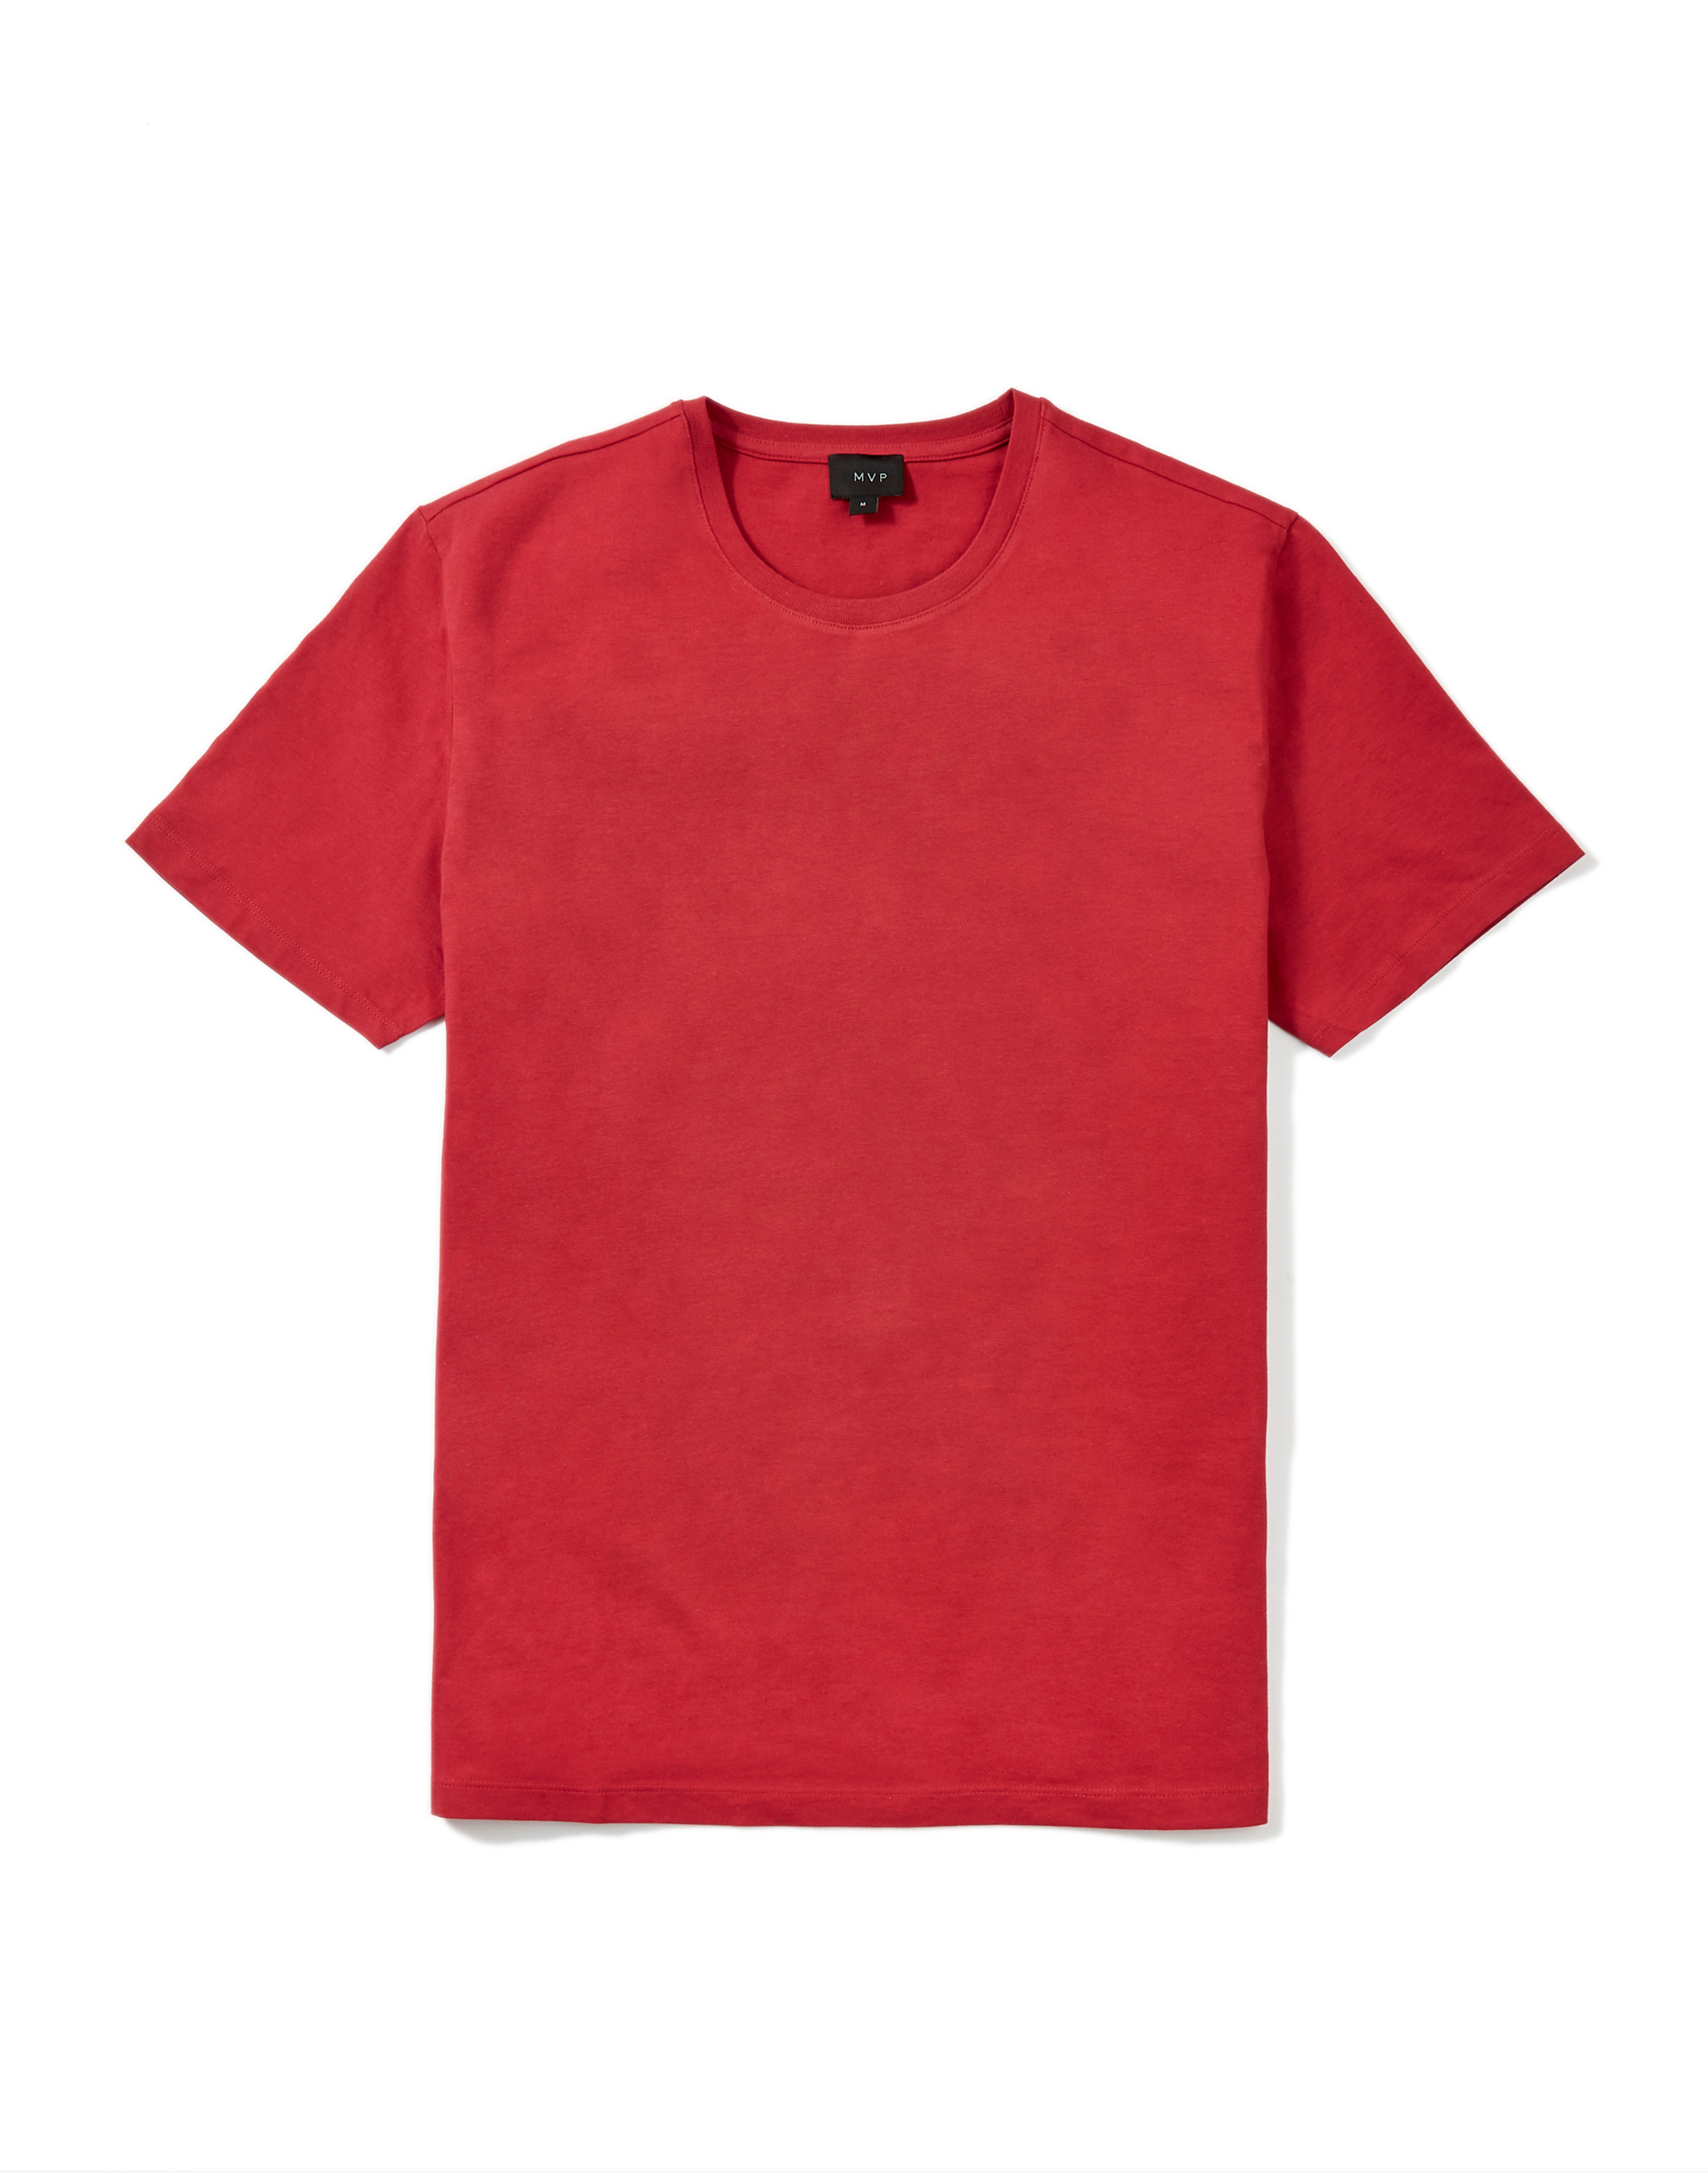 MVP Cardinal Red Ashfield Regular Crew Neck T-shirt